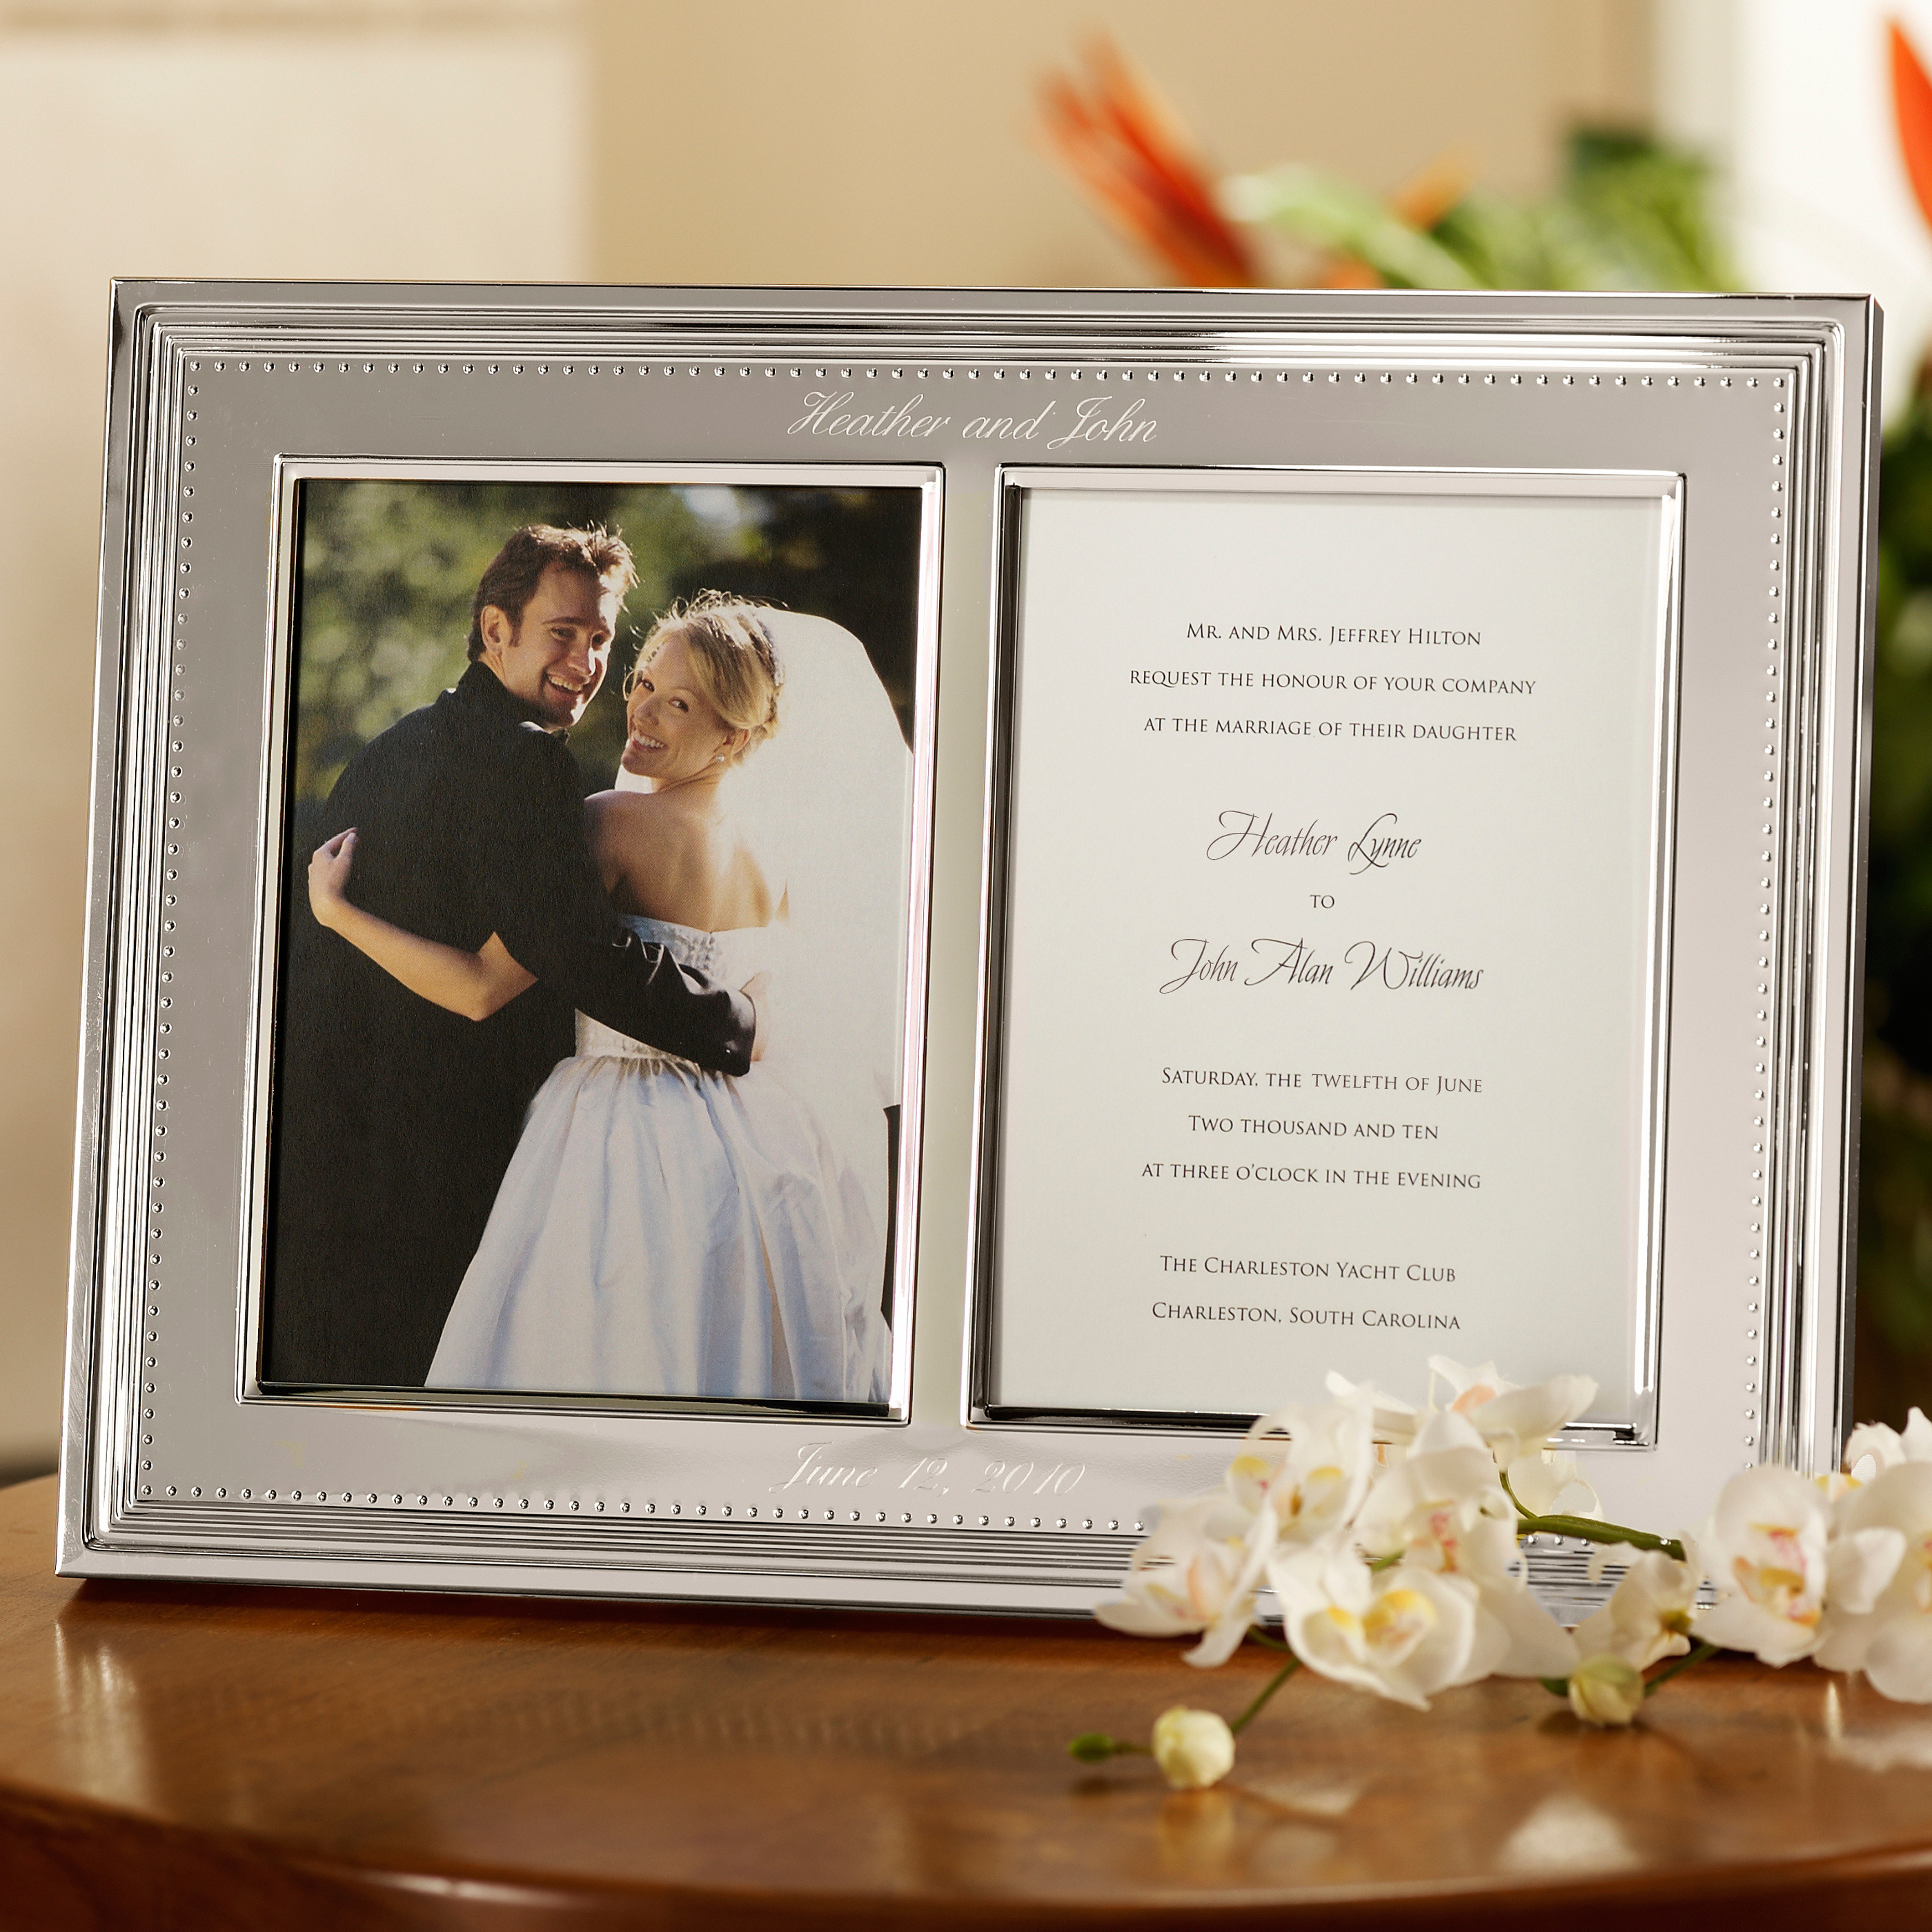 vera wang photo invitation frame